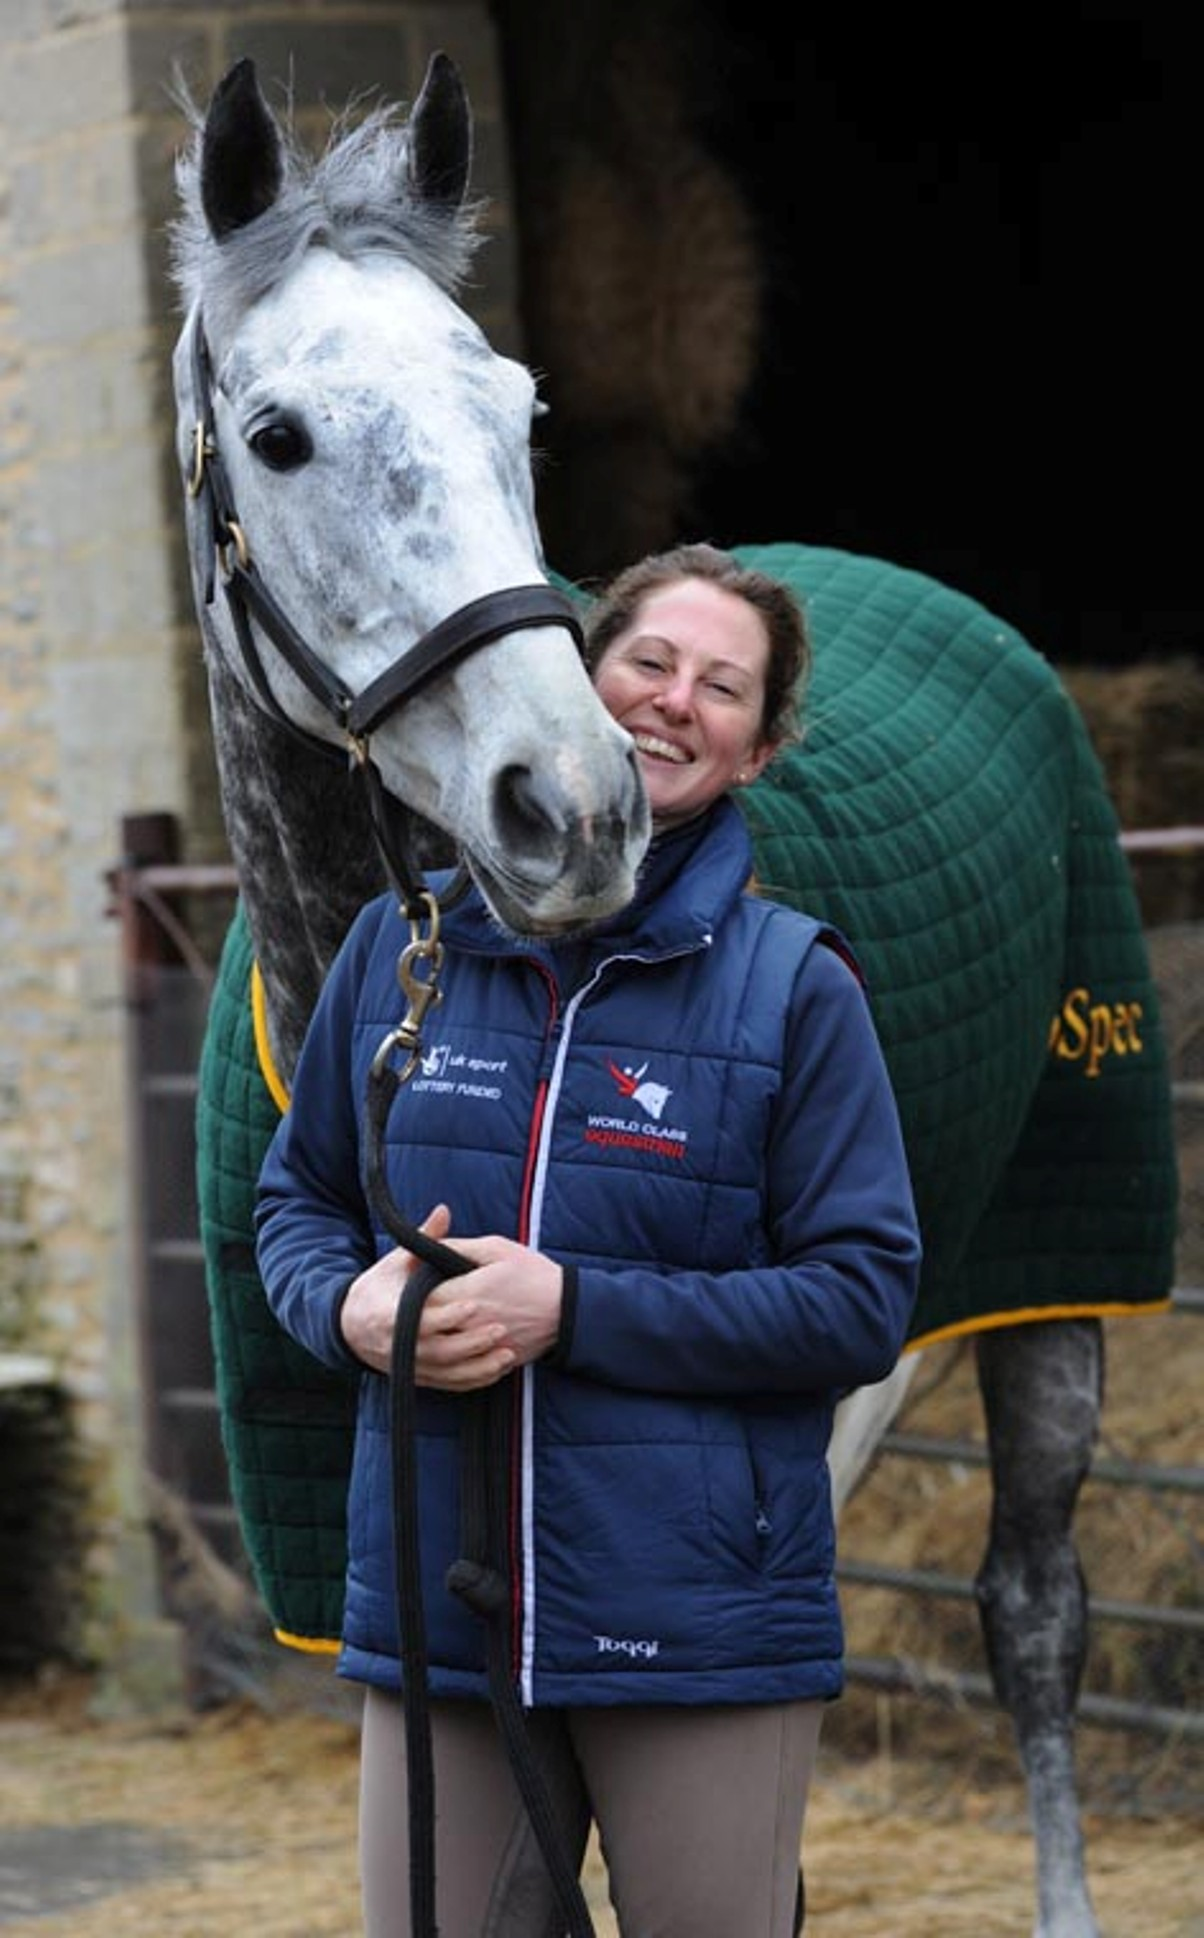 EVENTING: Kemble's Nicky Roncoroni bloods promising Stonedge in Nations Cup challenge